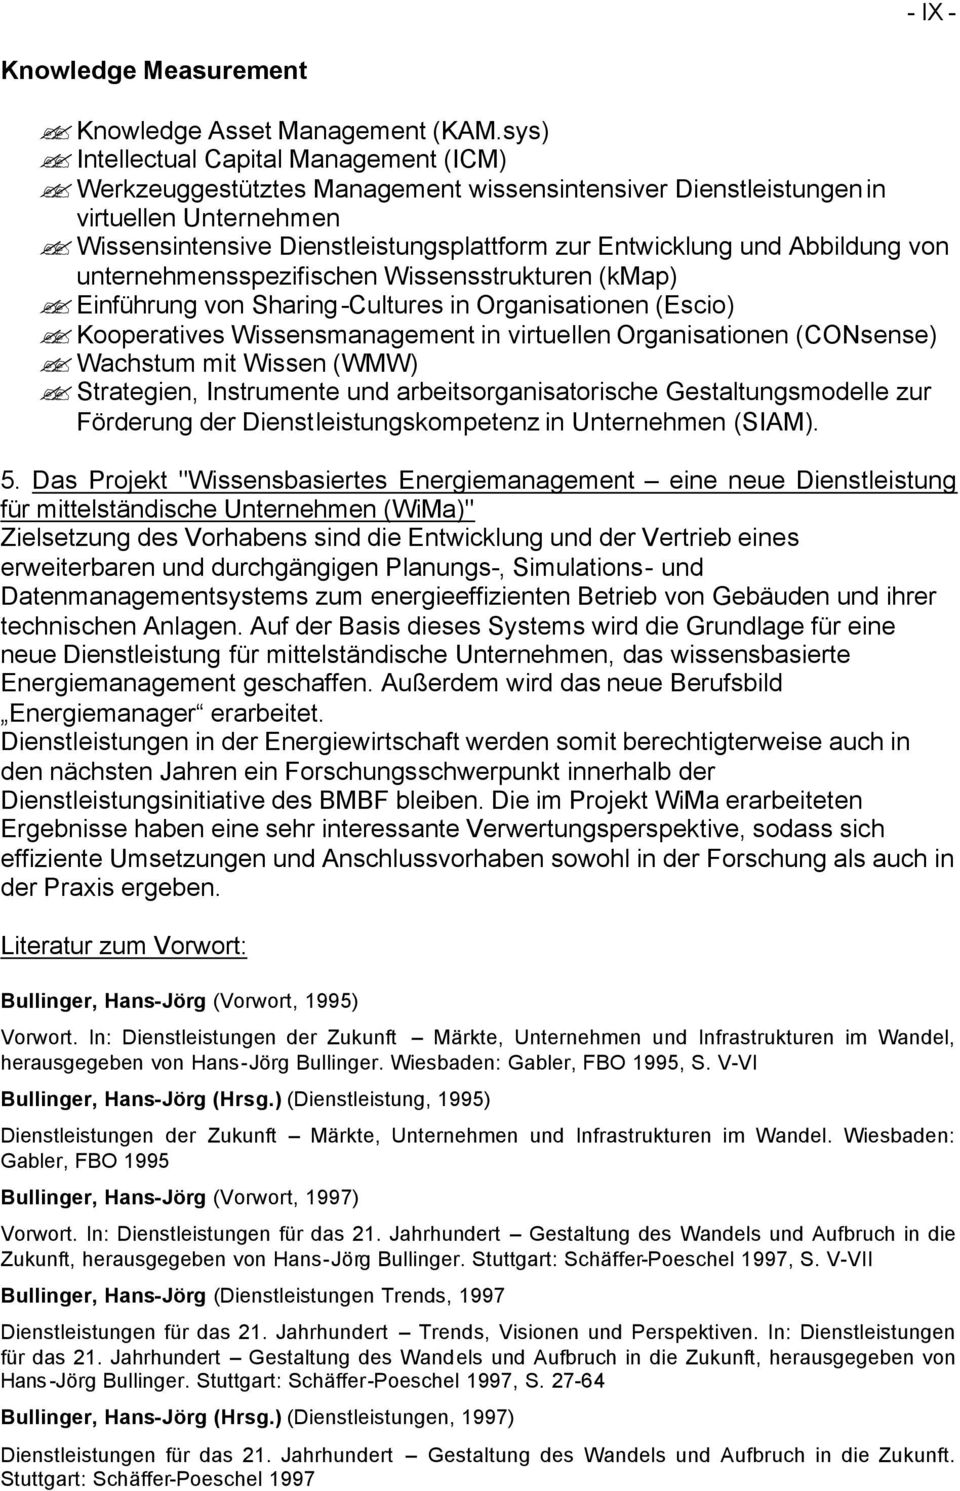 Abbildung von unternehmensspezifischen Wissensstrukturen (kmap) Einführung von Sharing-Cultures in Organisationen (Escio) Kooperatives Wissensmanagement in virtuellen Organisationen (CONsense)